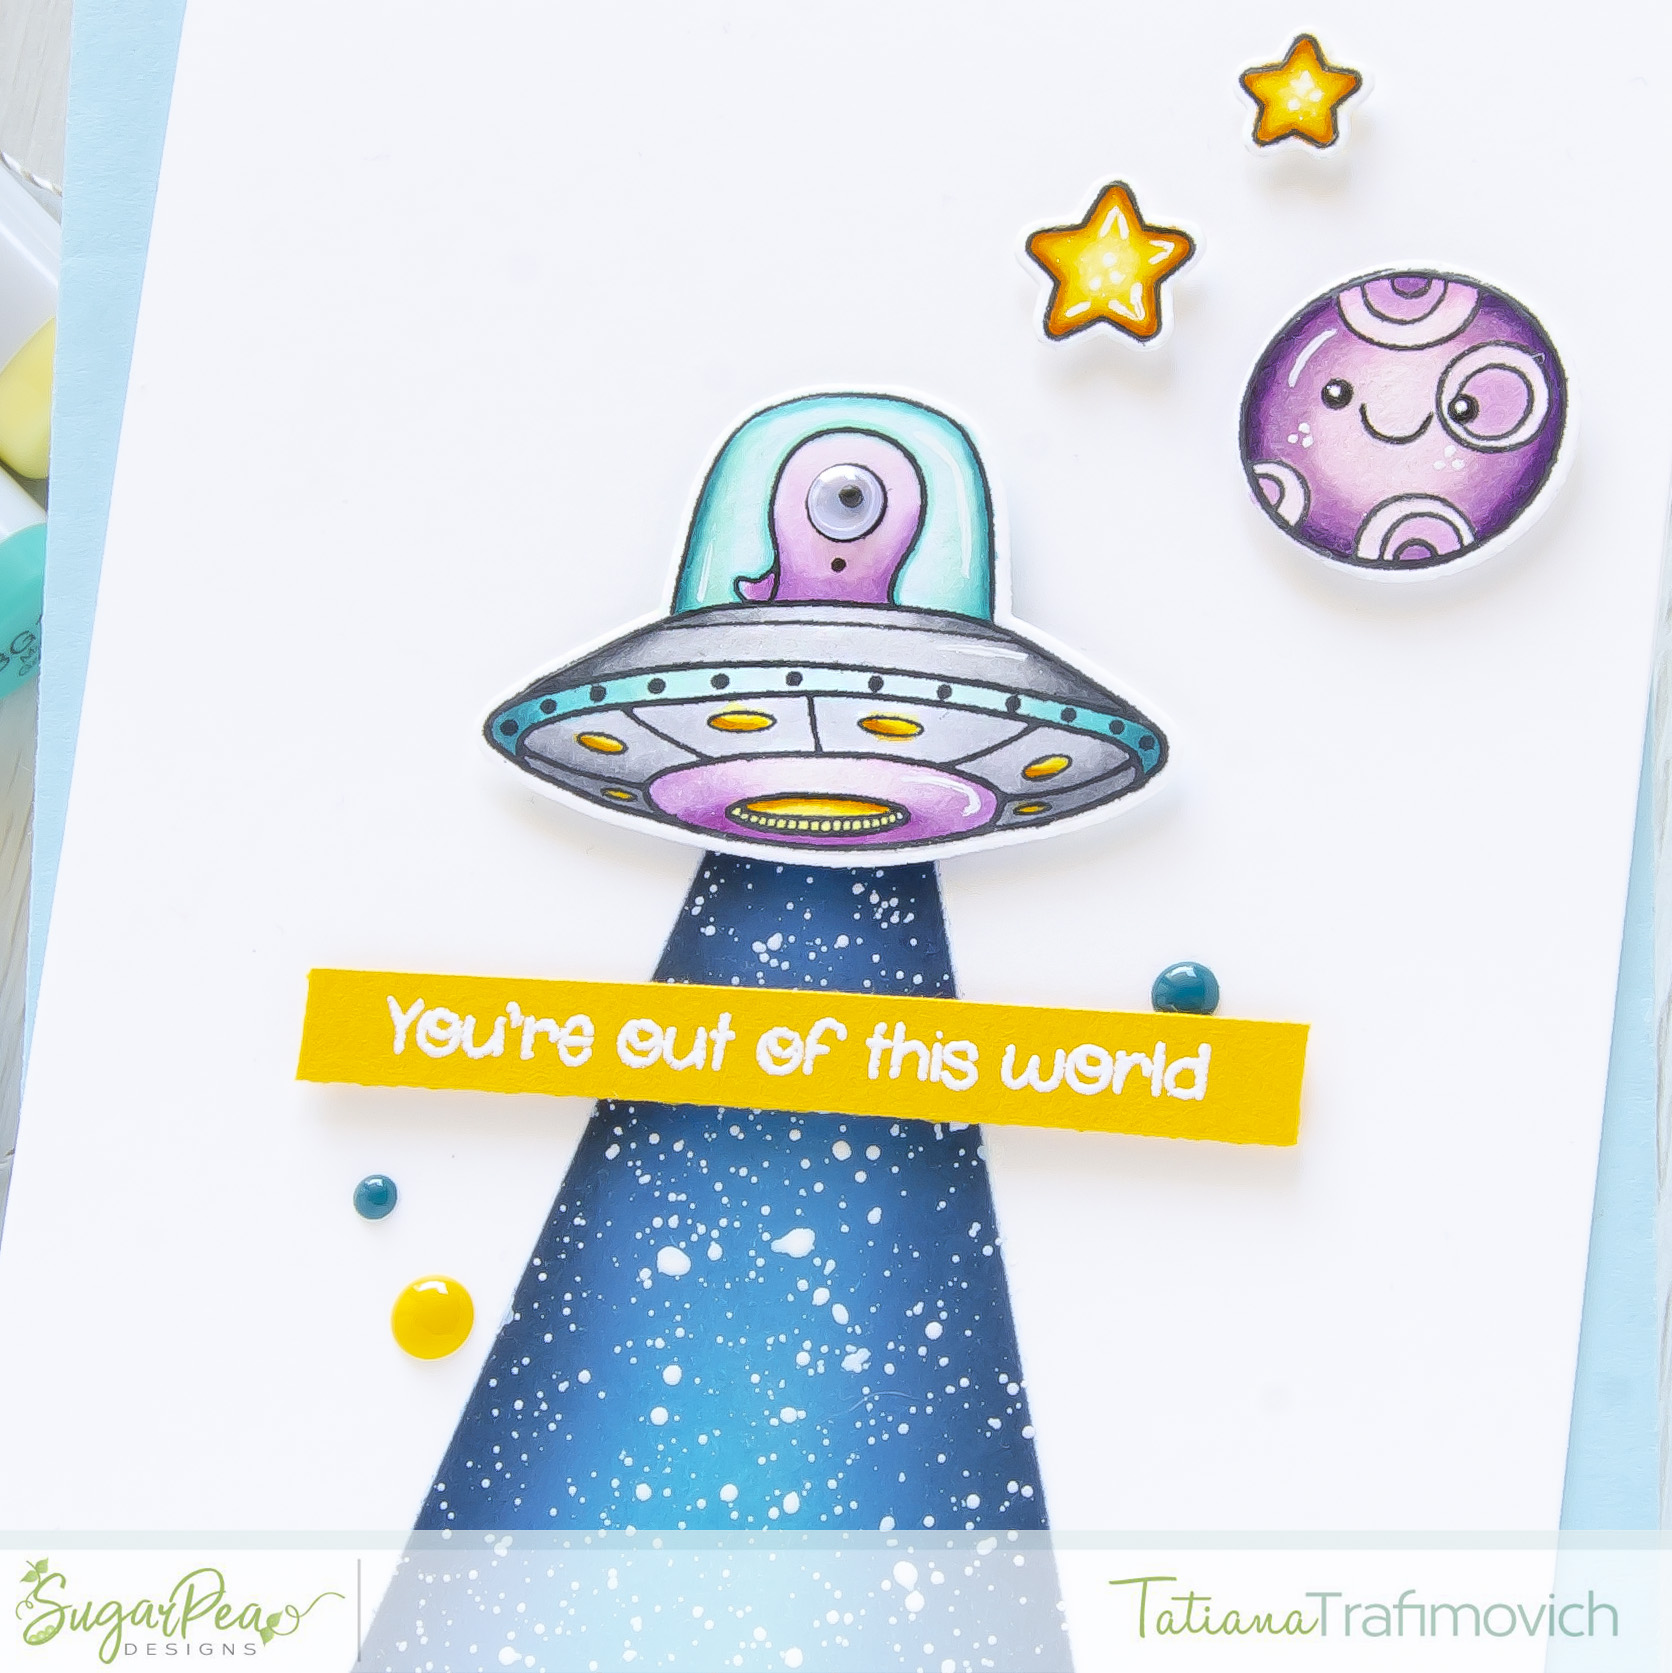 You're Out Of This World #handmade card by Tatiana Trafimovich #tatianacraftandart - Take Us To Your Cake stamp set by SugarPea Designs #sugarpeadesigns